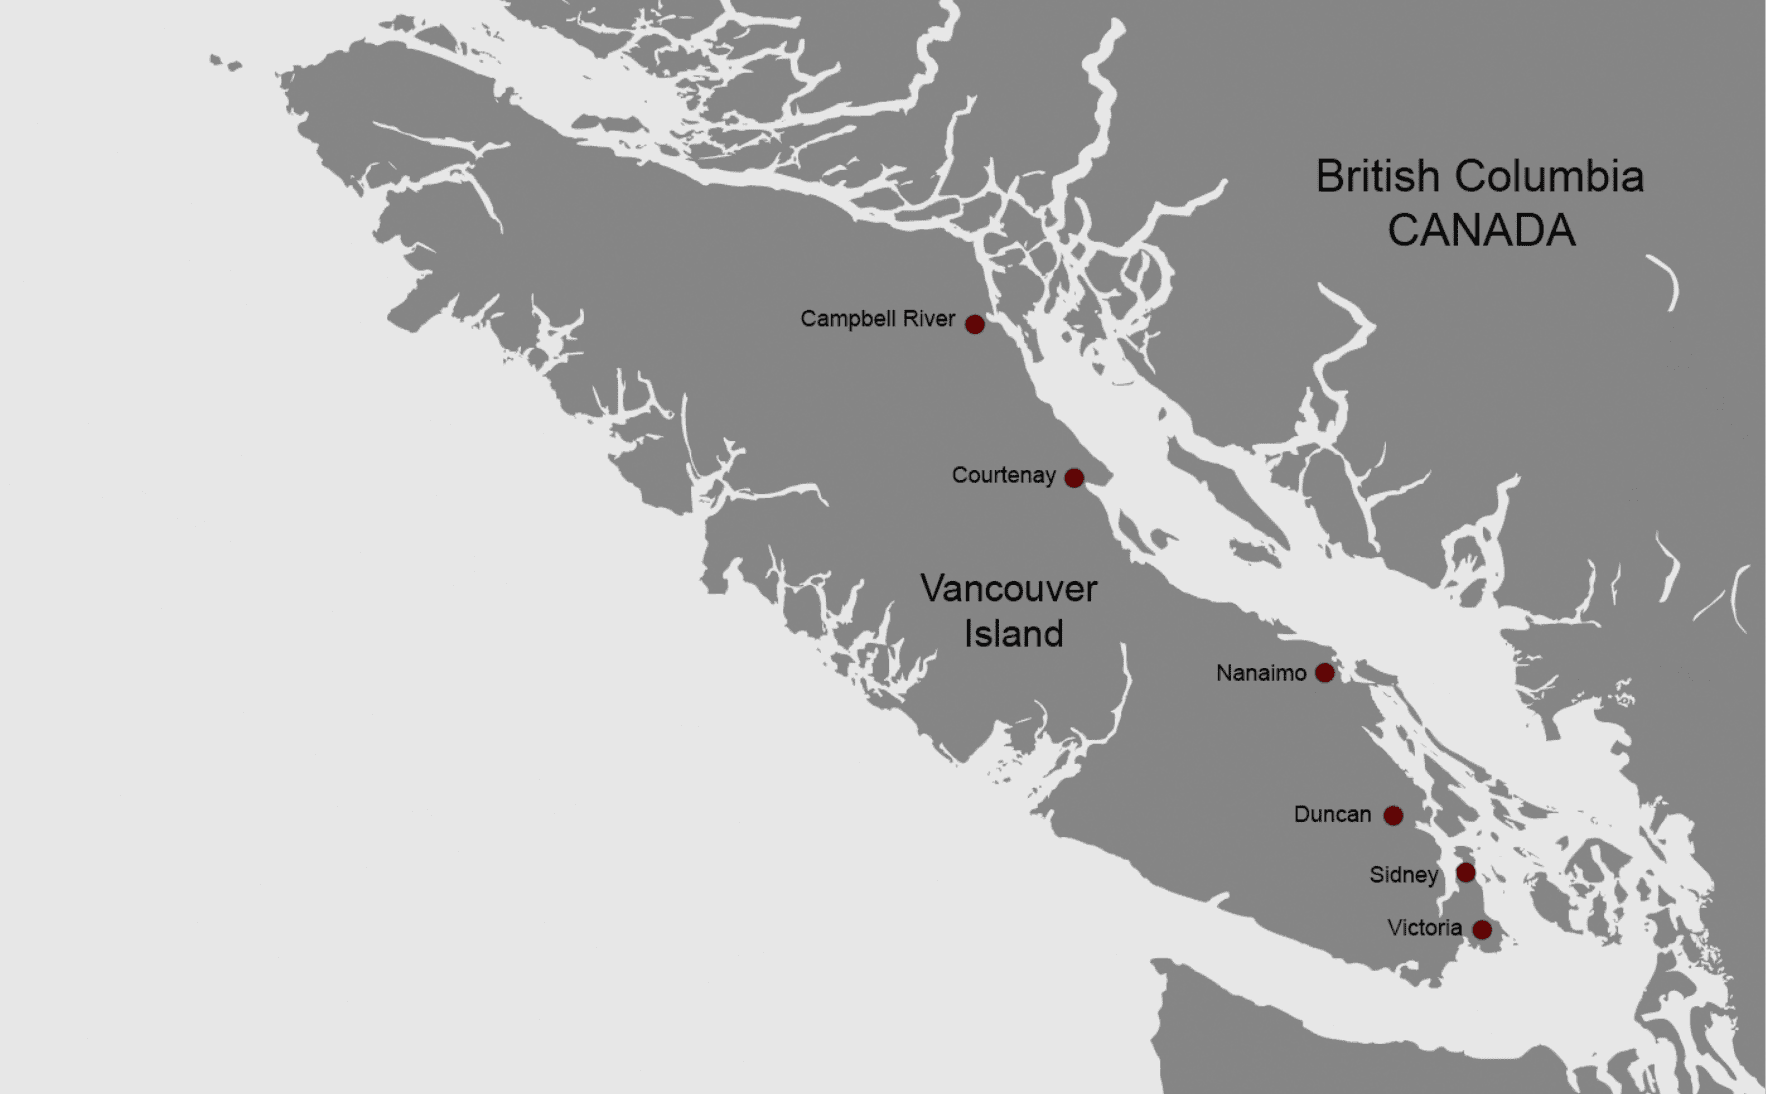 elevating services Vancouver island